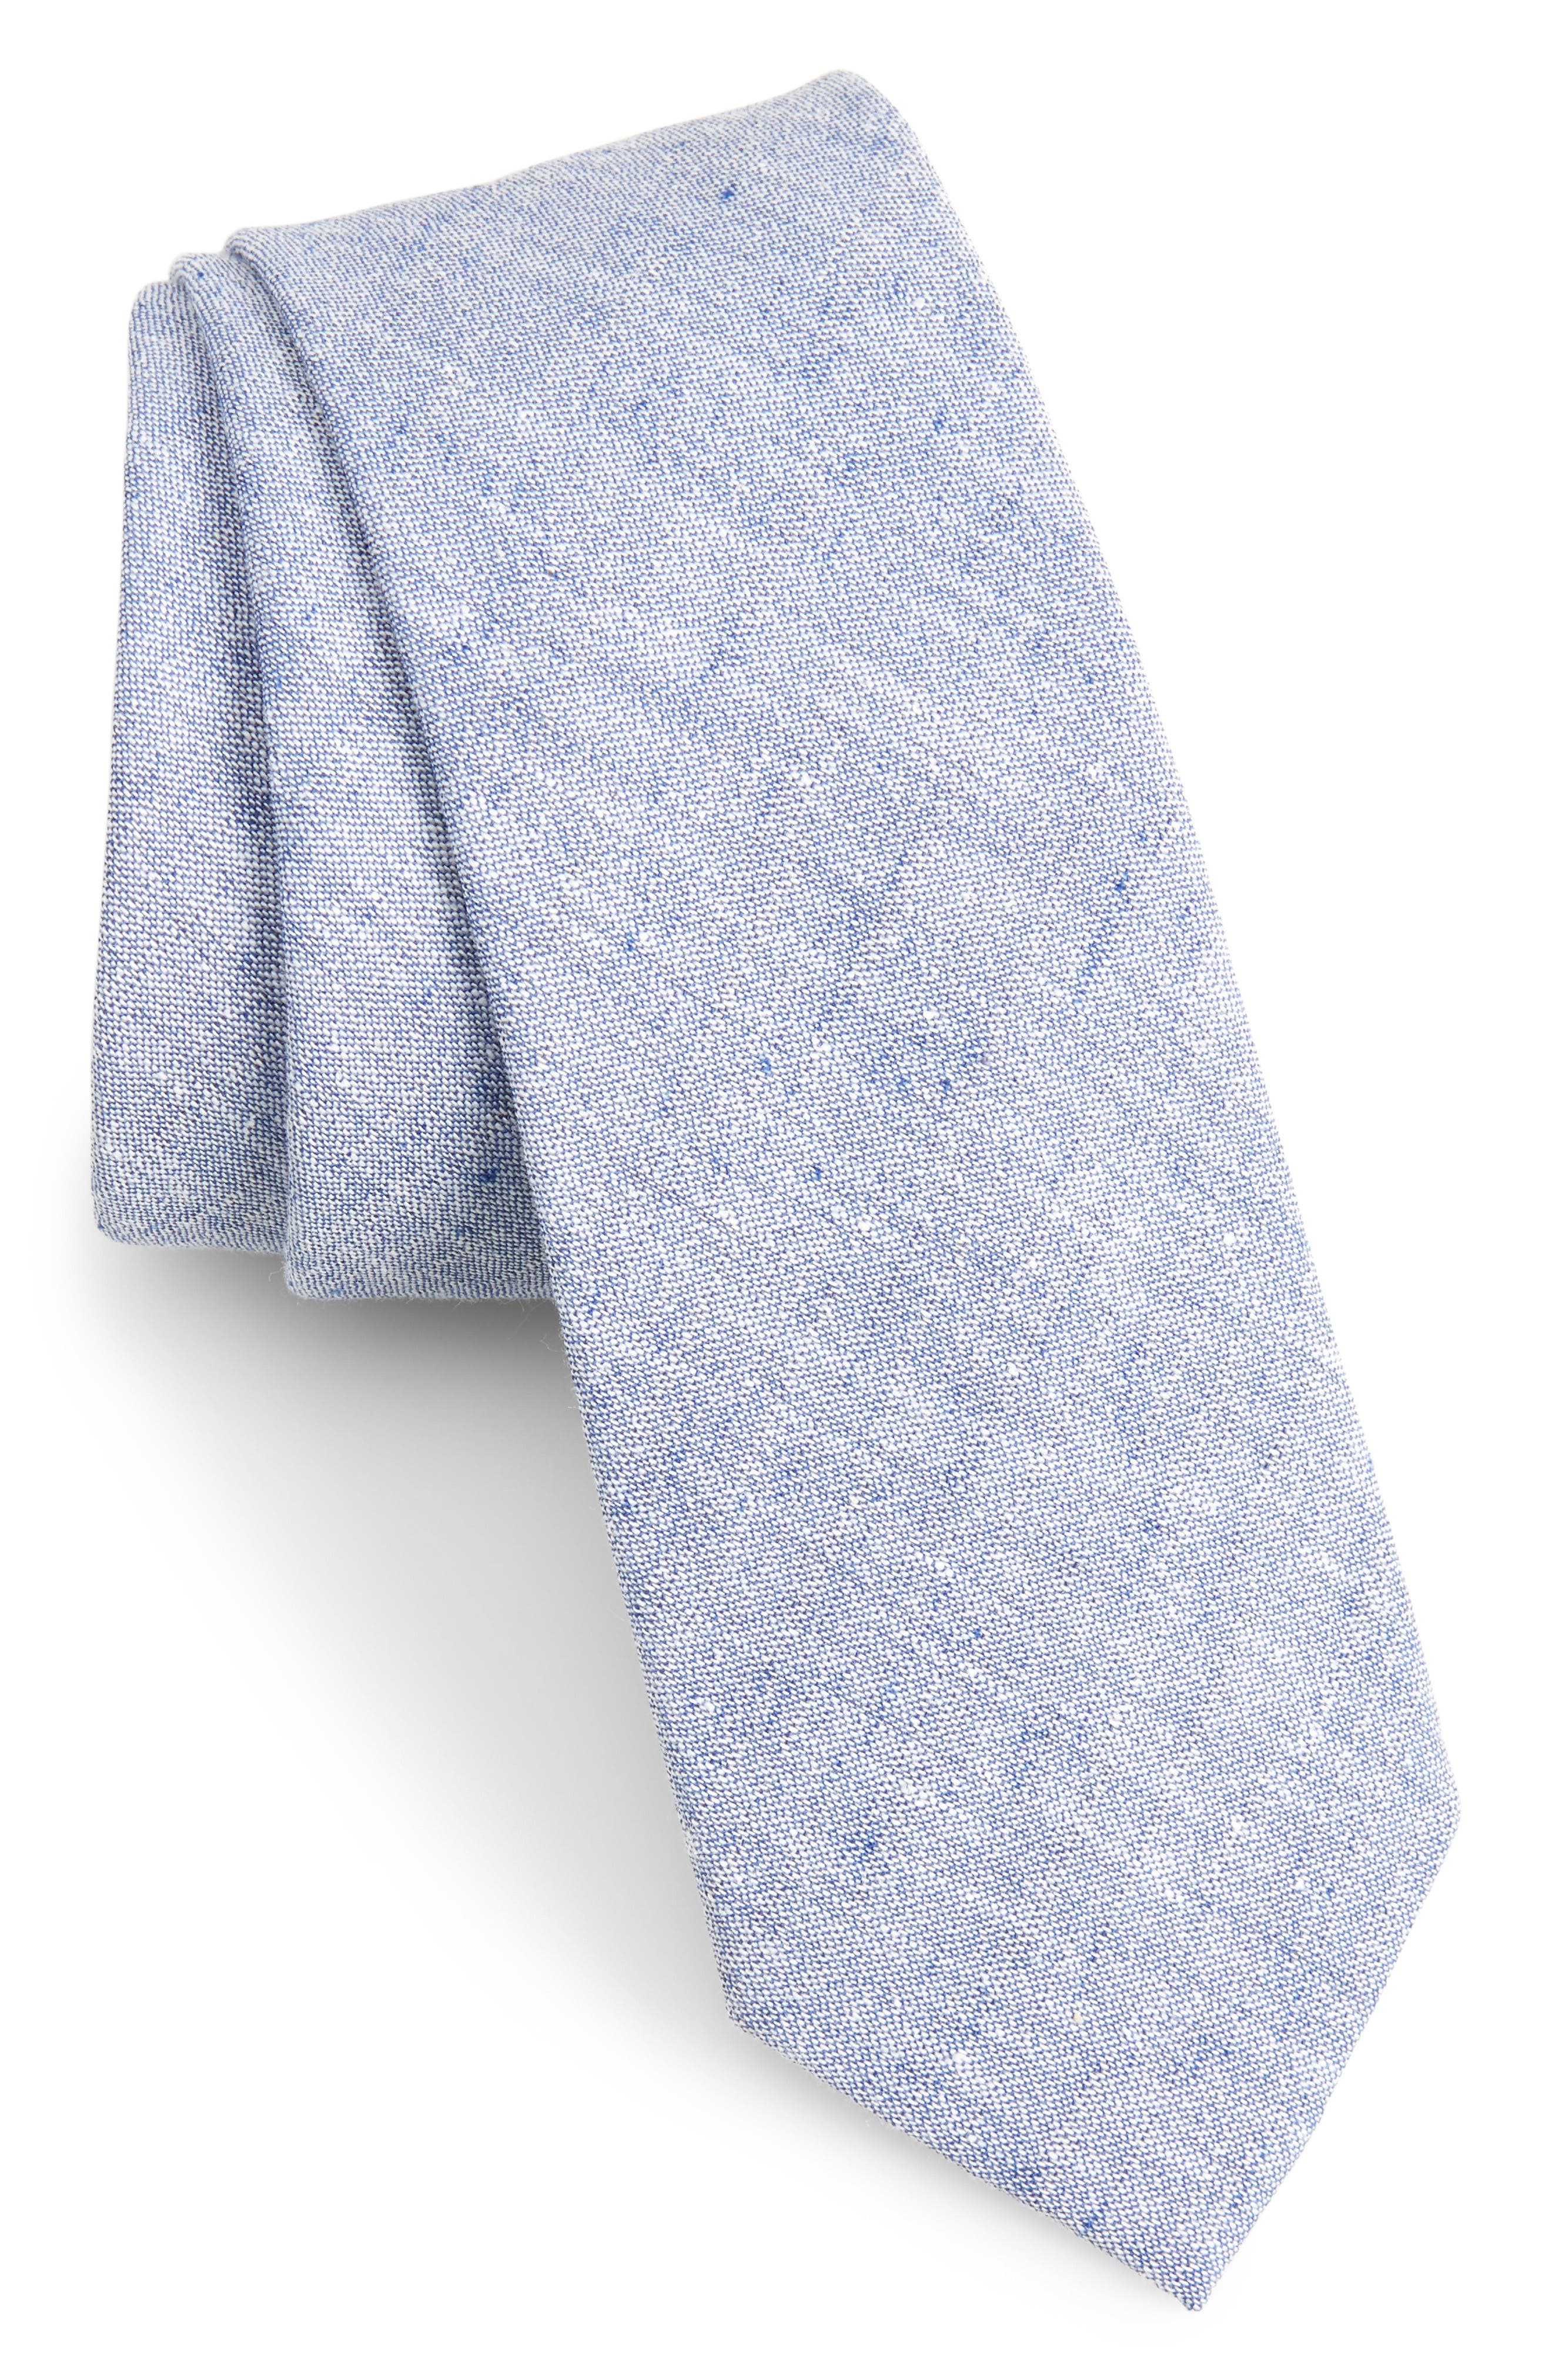 Collins Solid Skinny Tie,                             Main thumbnail 1, color,                             410